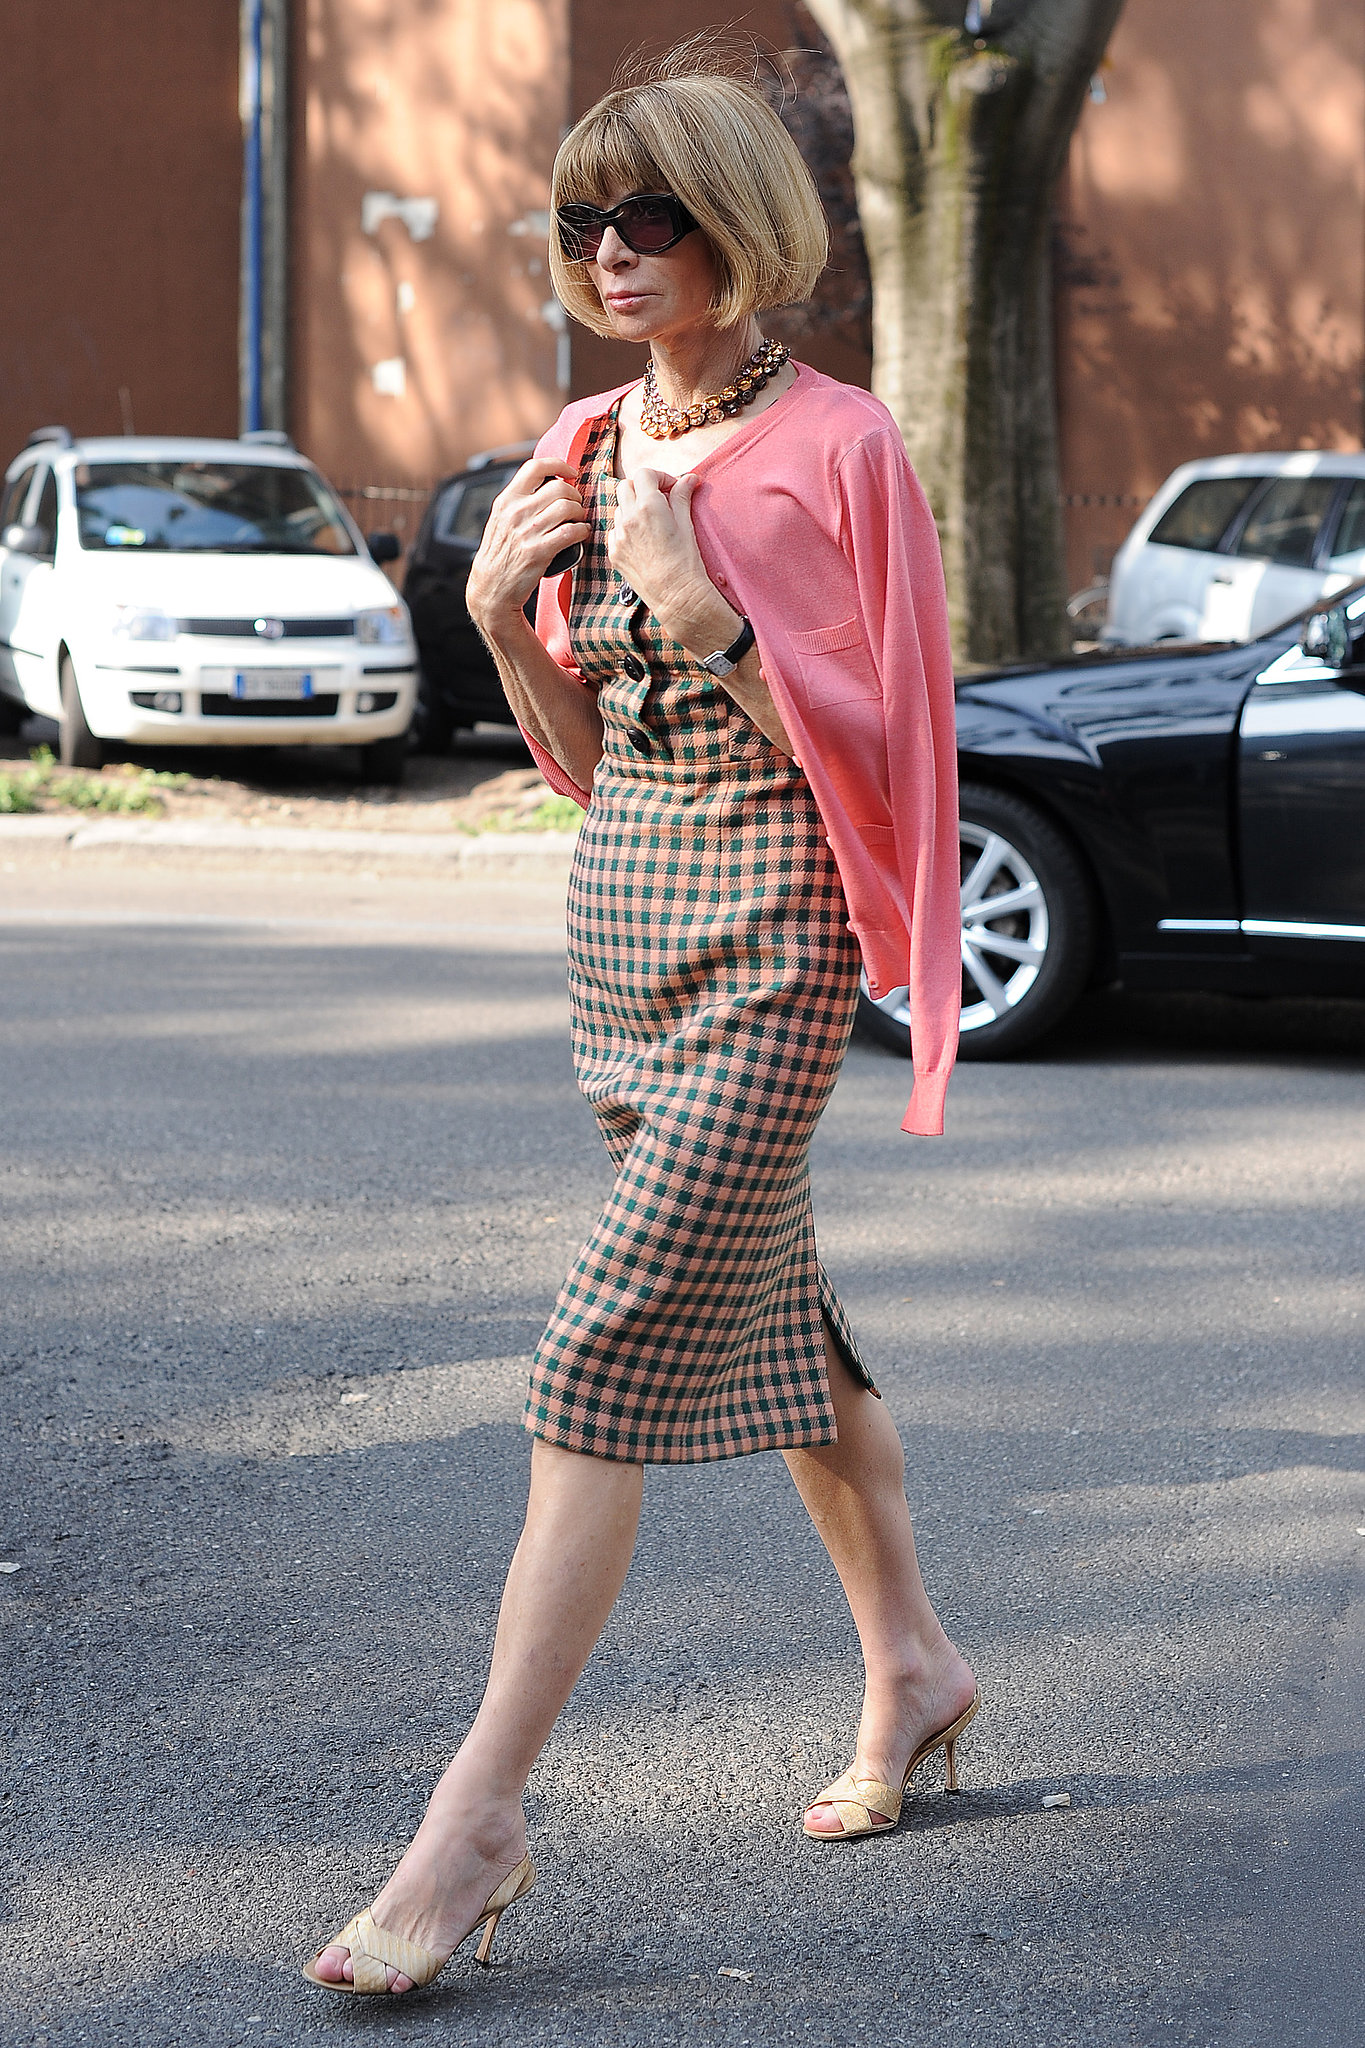 Another Day Another Slim Plaid Dress From Anna Wintour